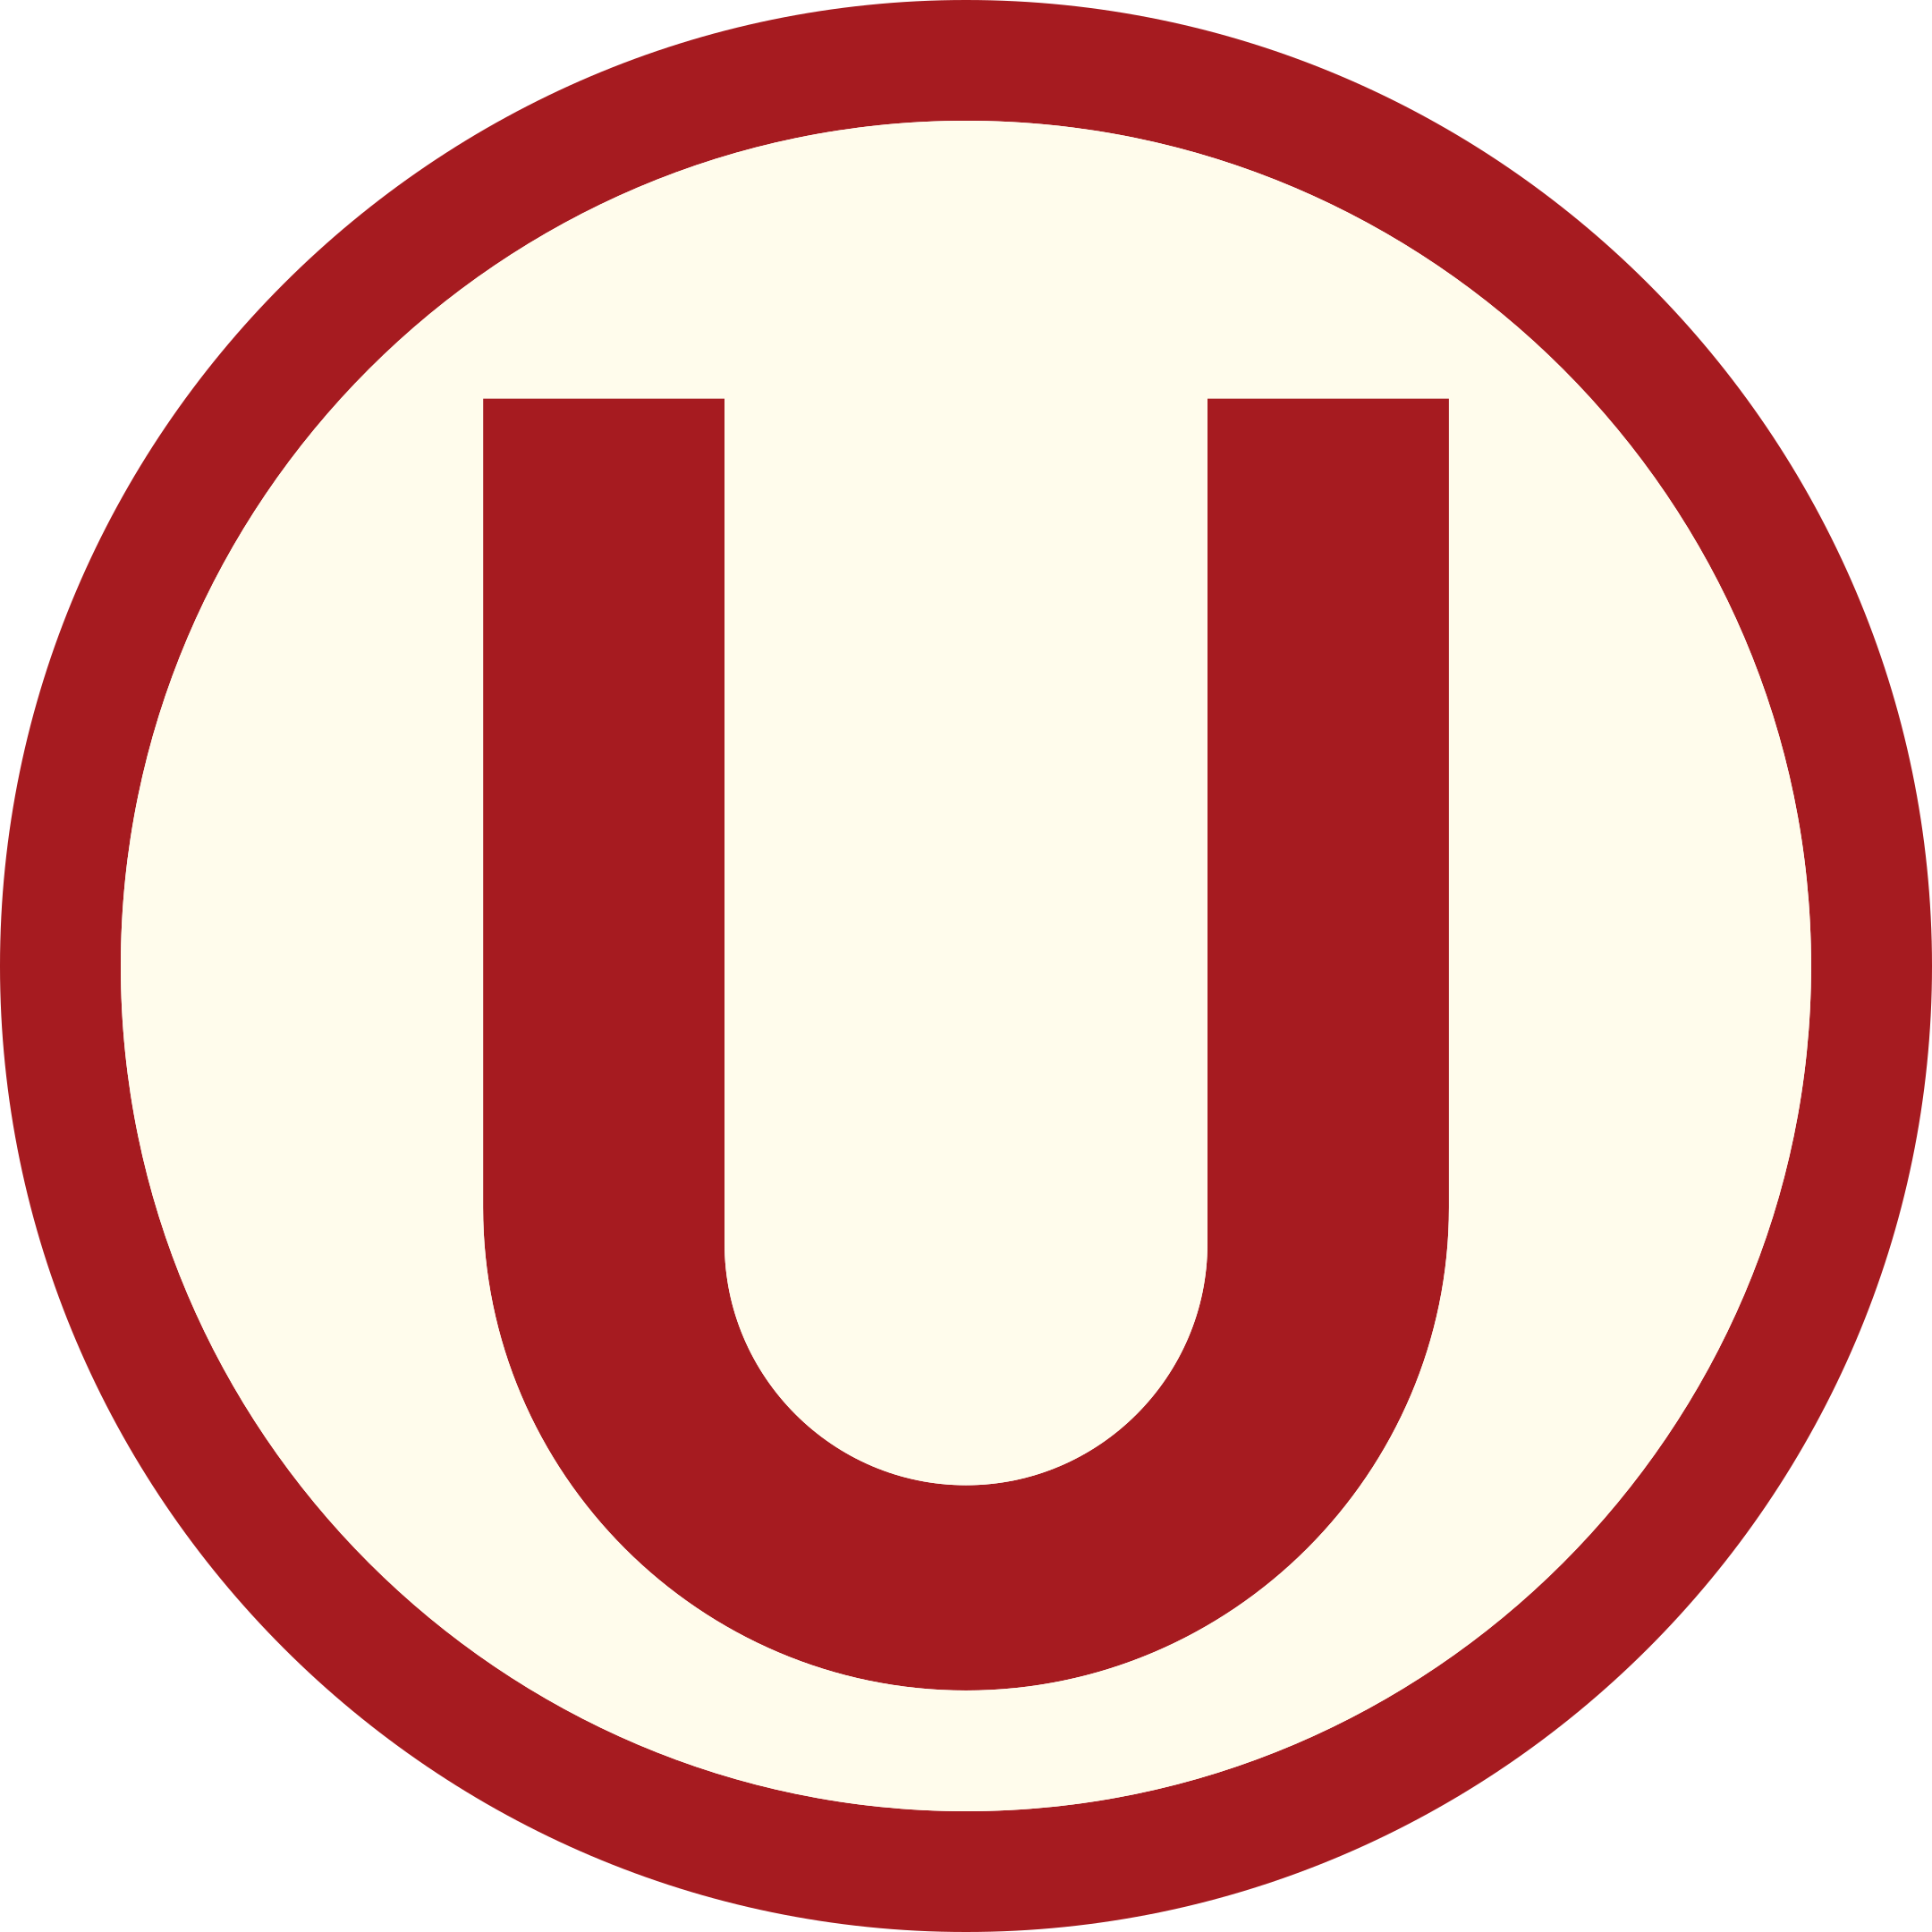 universitario fc logo escudo 1 - Universitario Logo